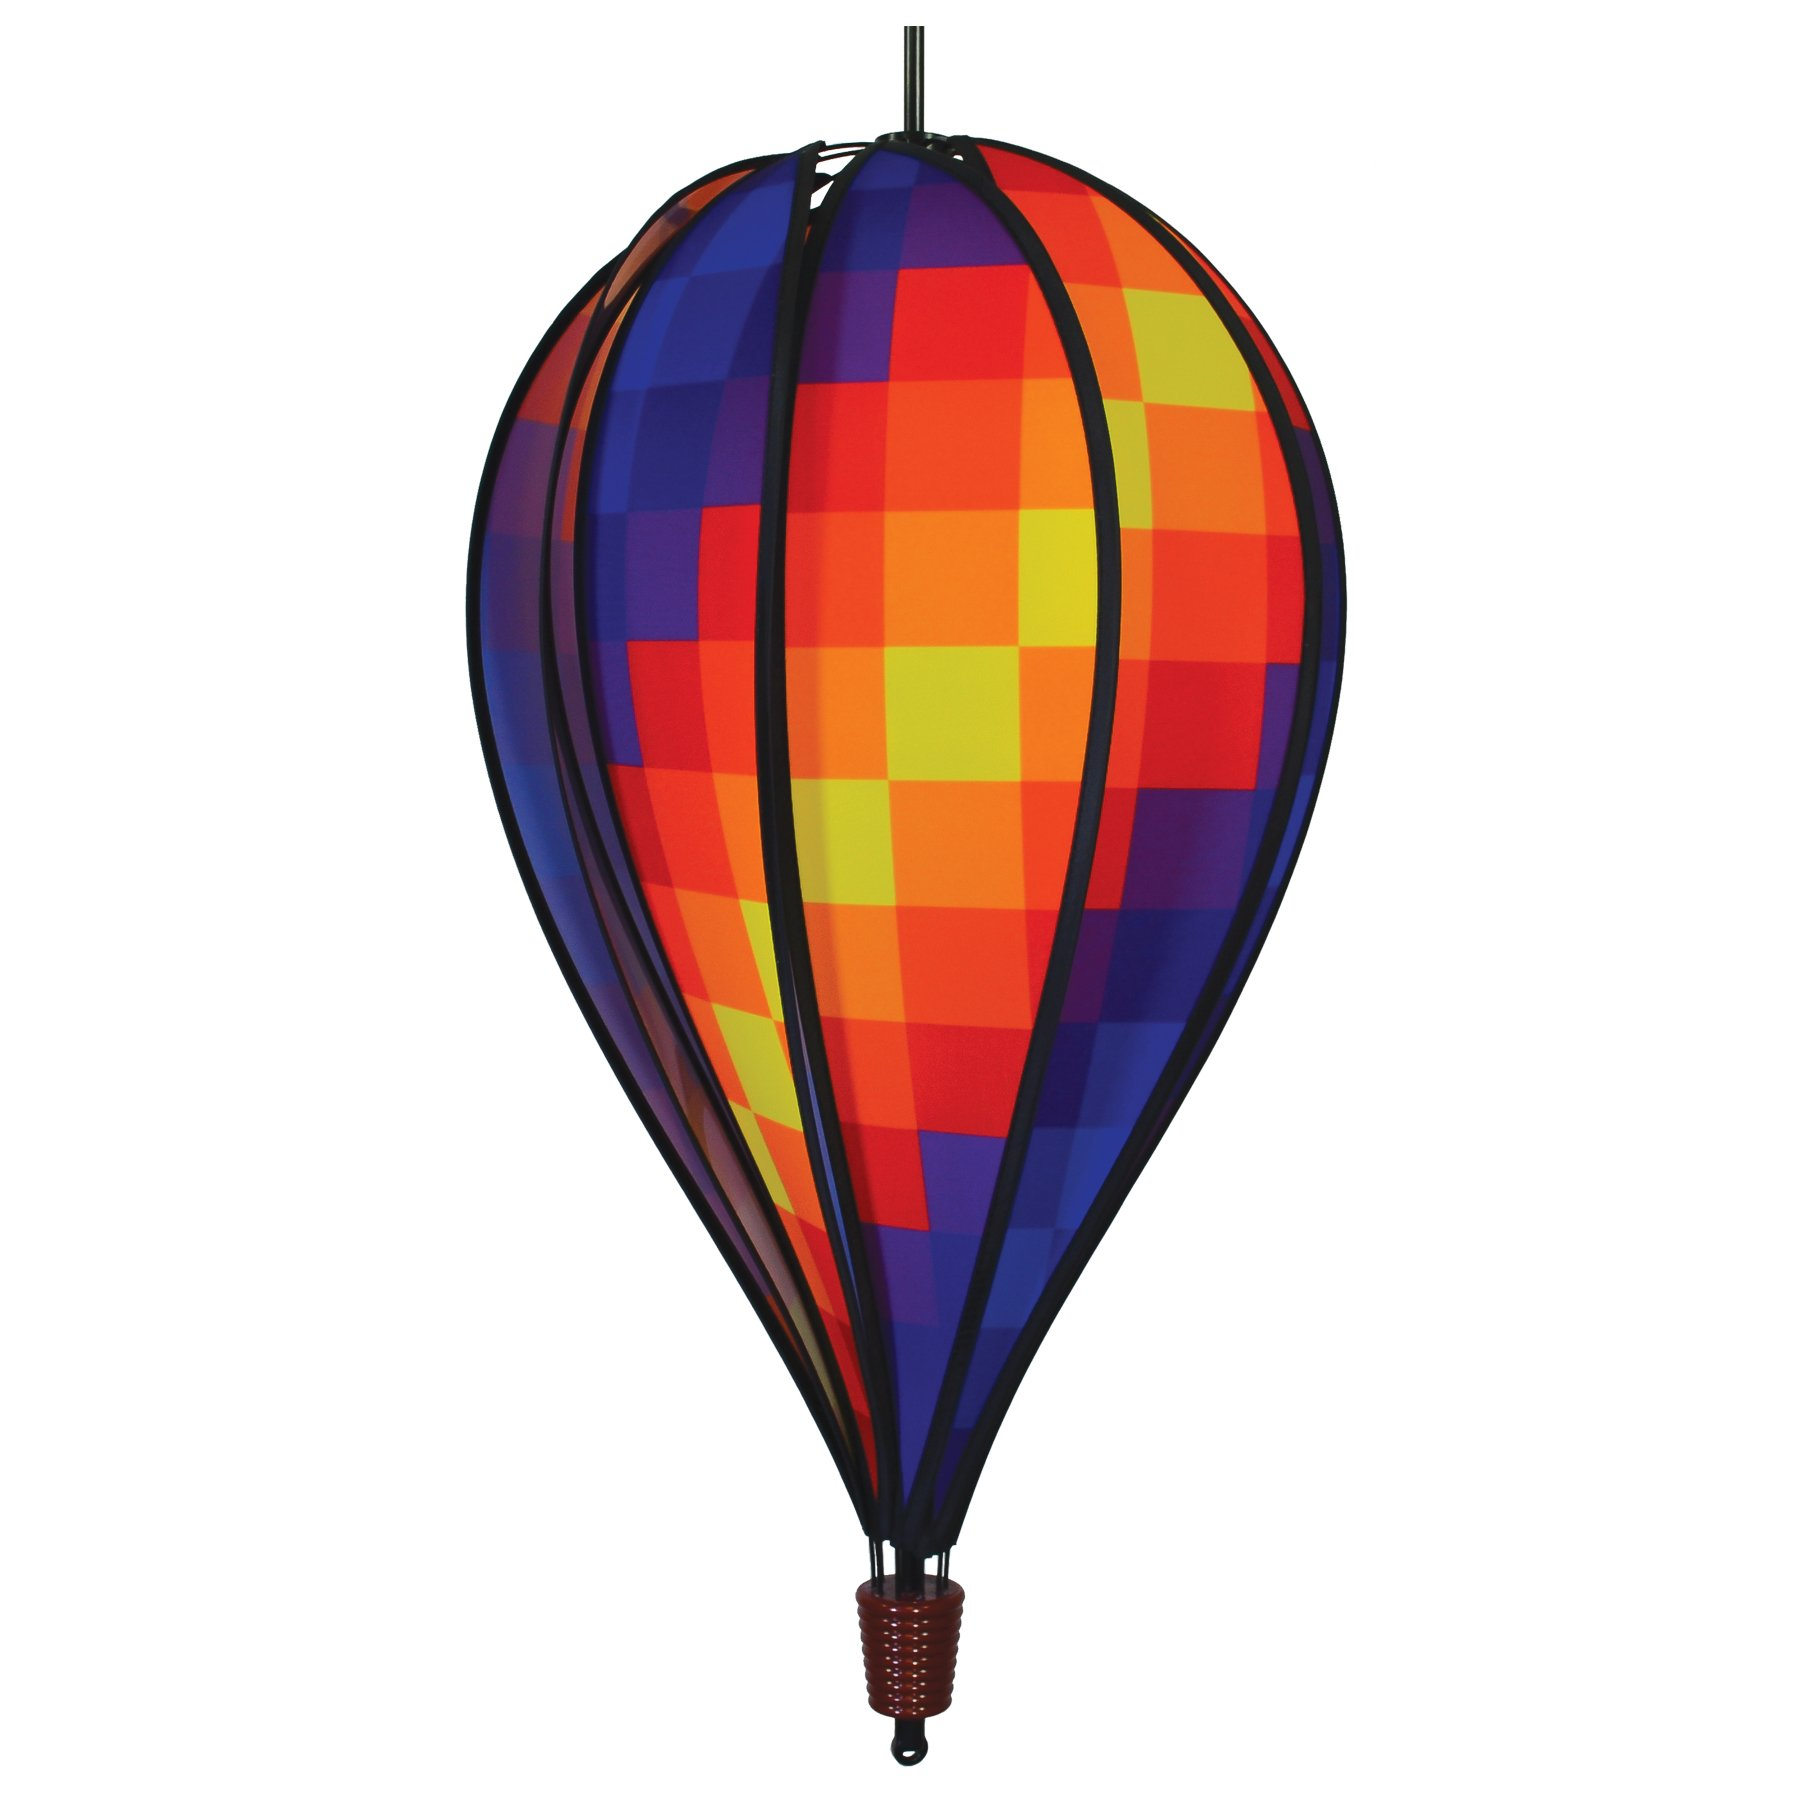 In the Breeze 0998 Rainbow Pixel Hot Air 10-Panel Hanging, Spinning Balloon Decoration, 25-Inches